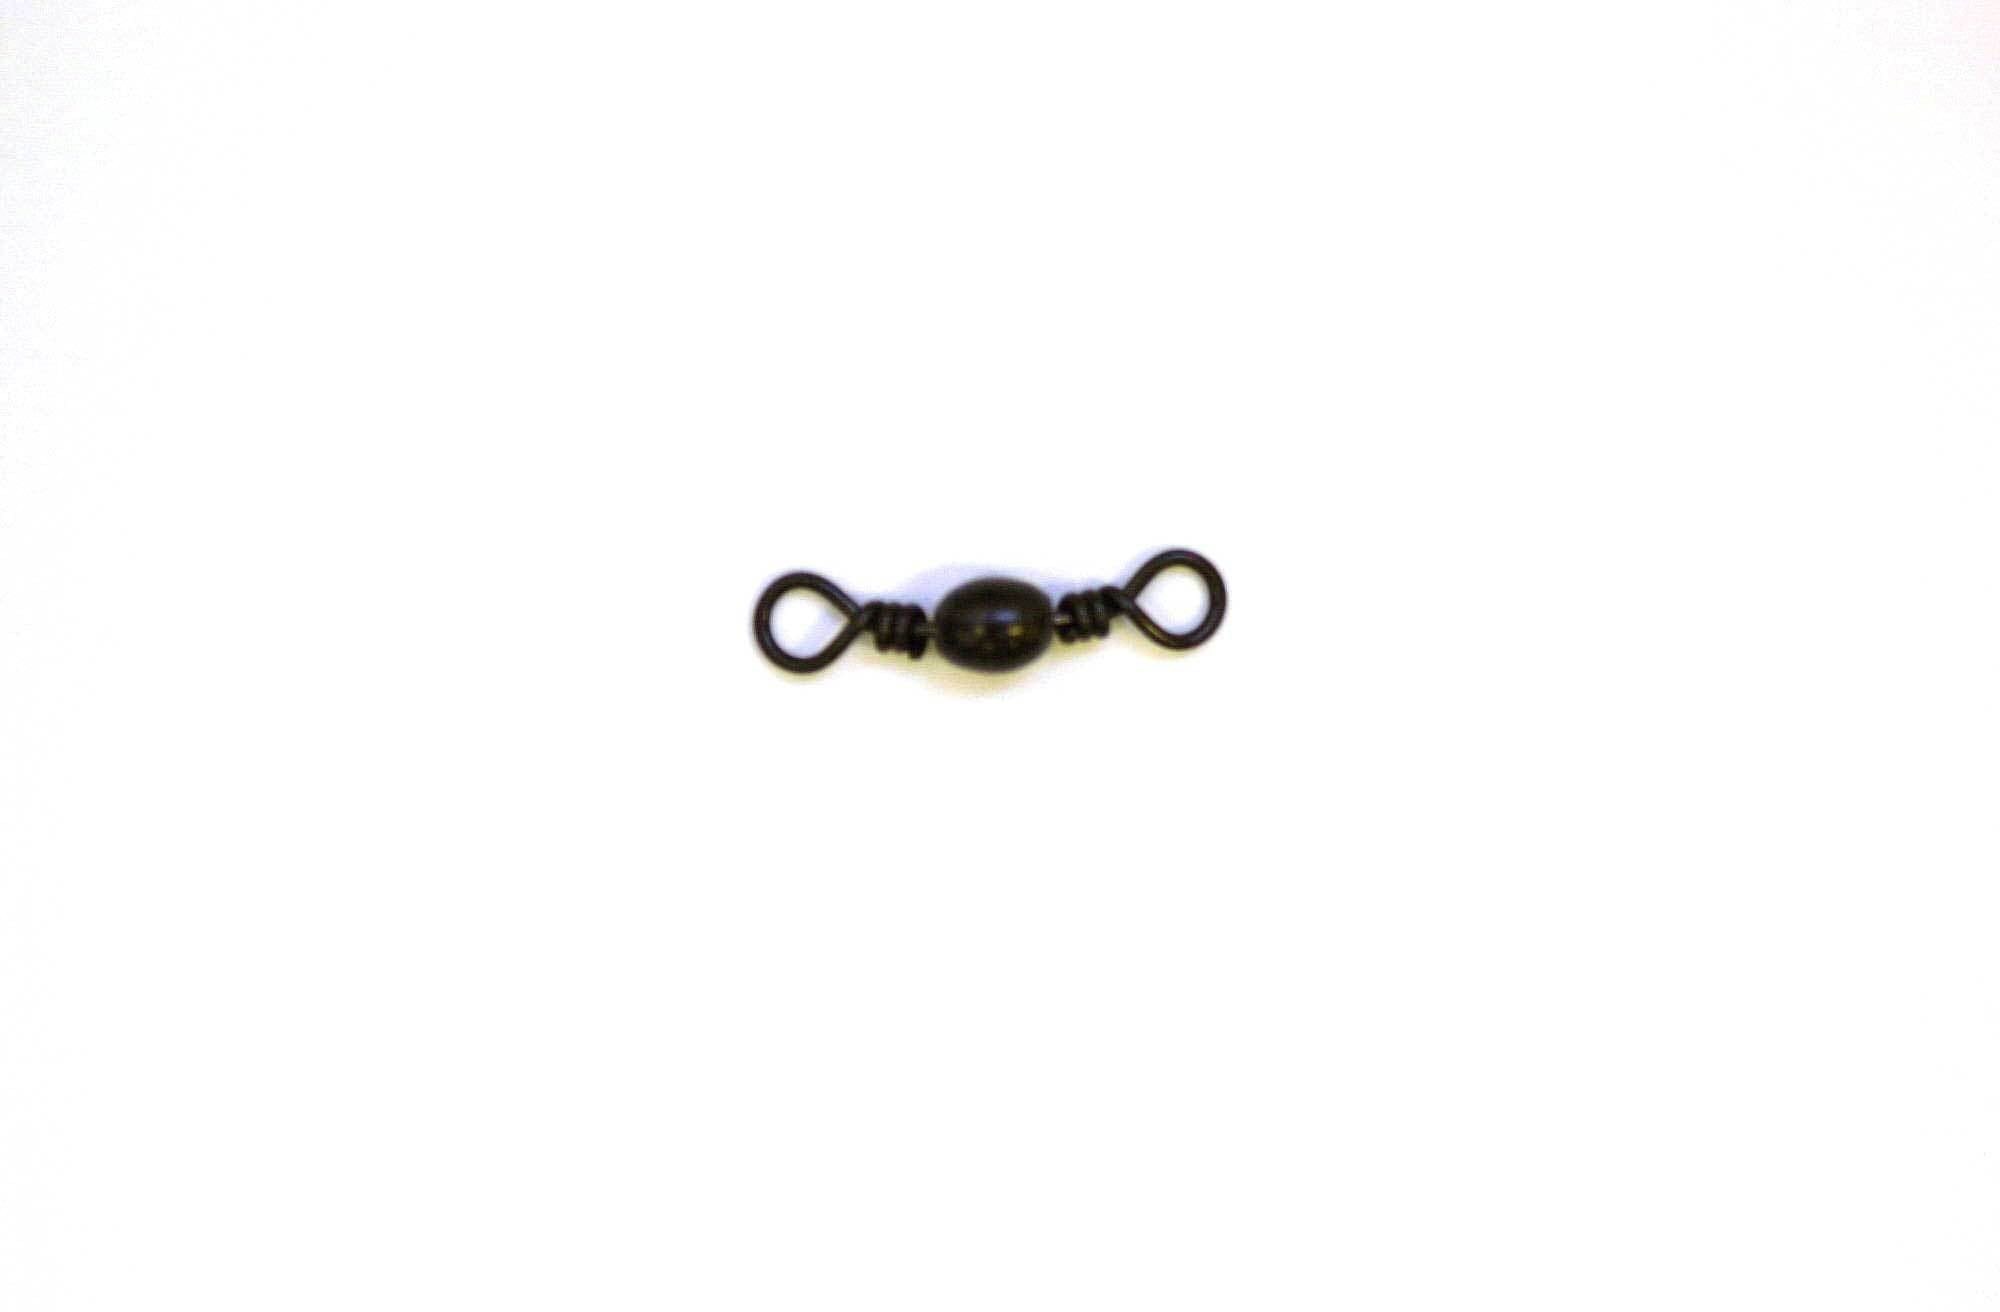 Eagle Claw Swivel-Black Barrel 12ct-12pk Size 1